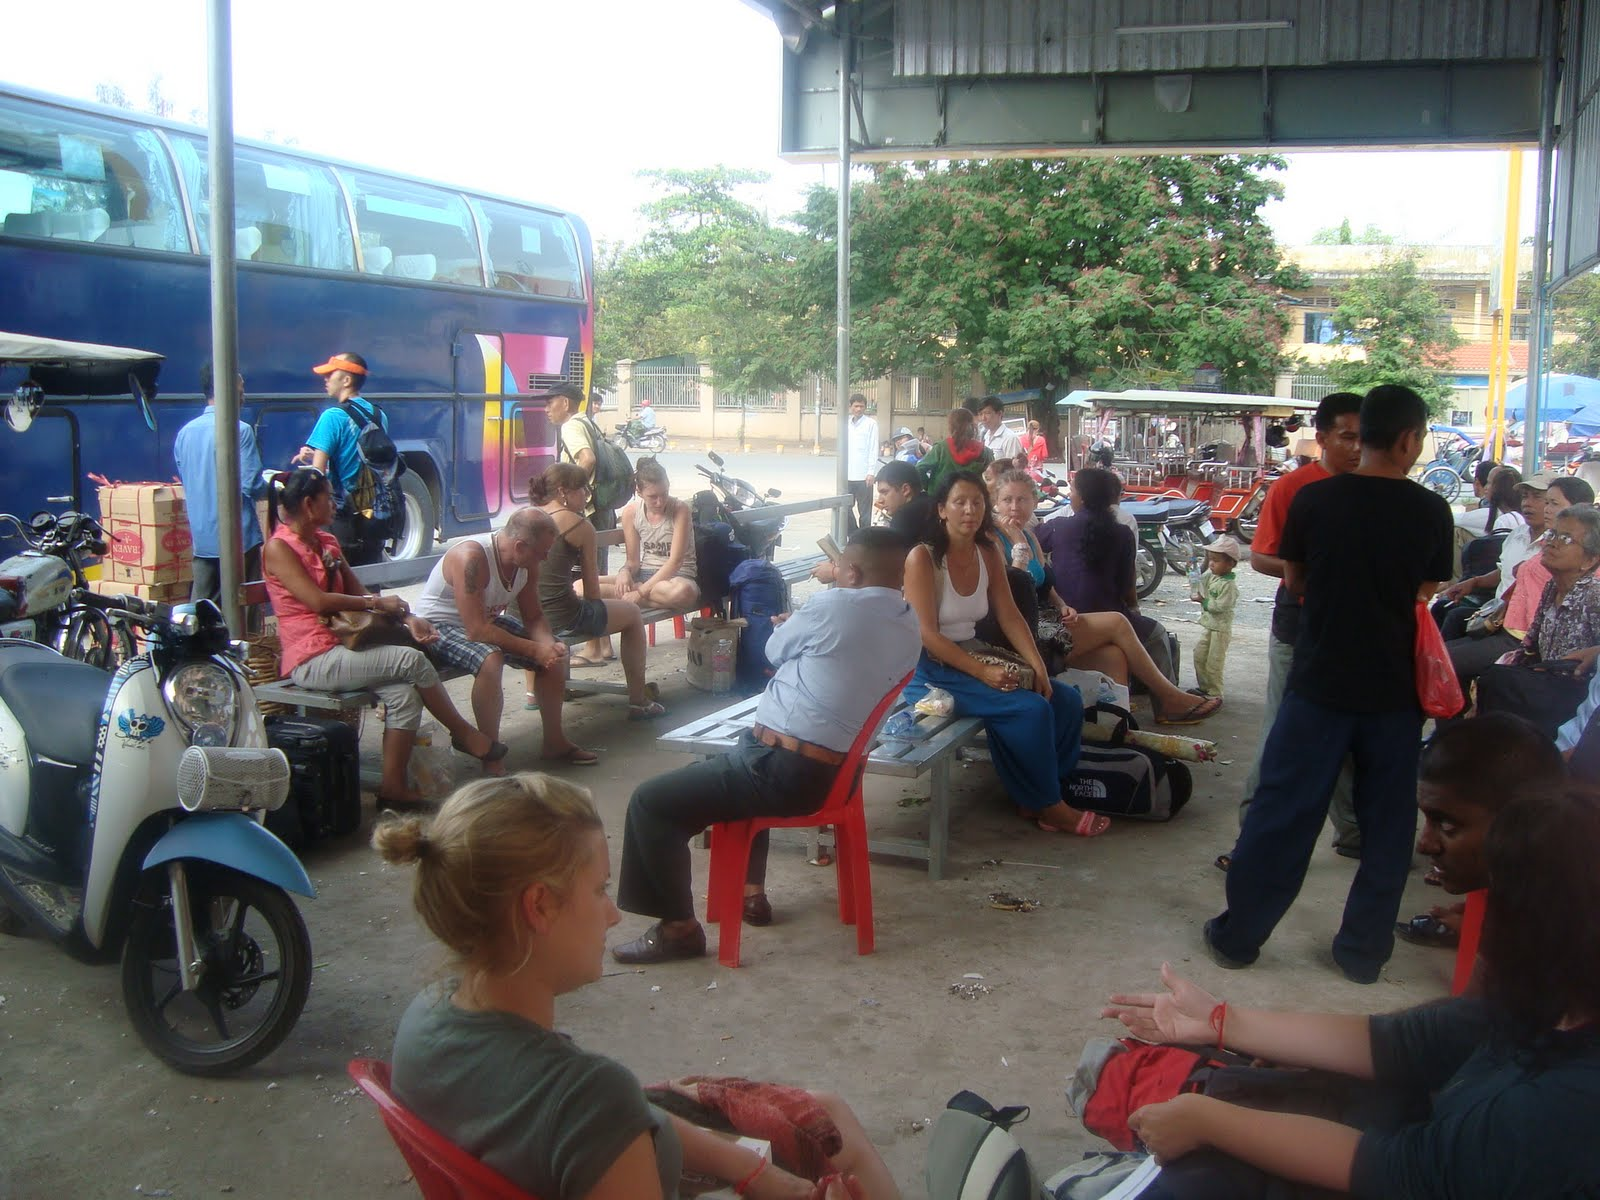 Bus station in CambodiaBus station in Cambodia